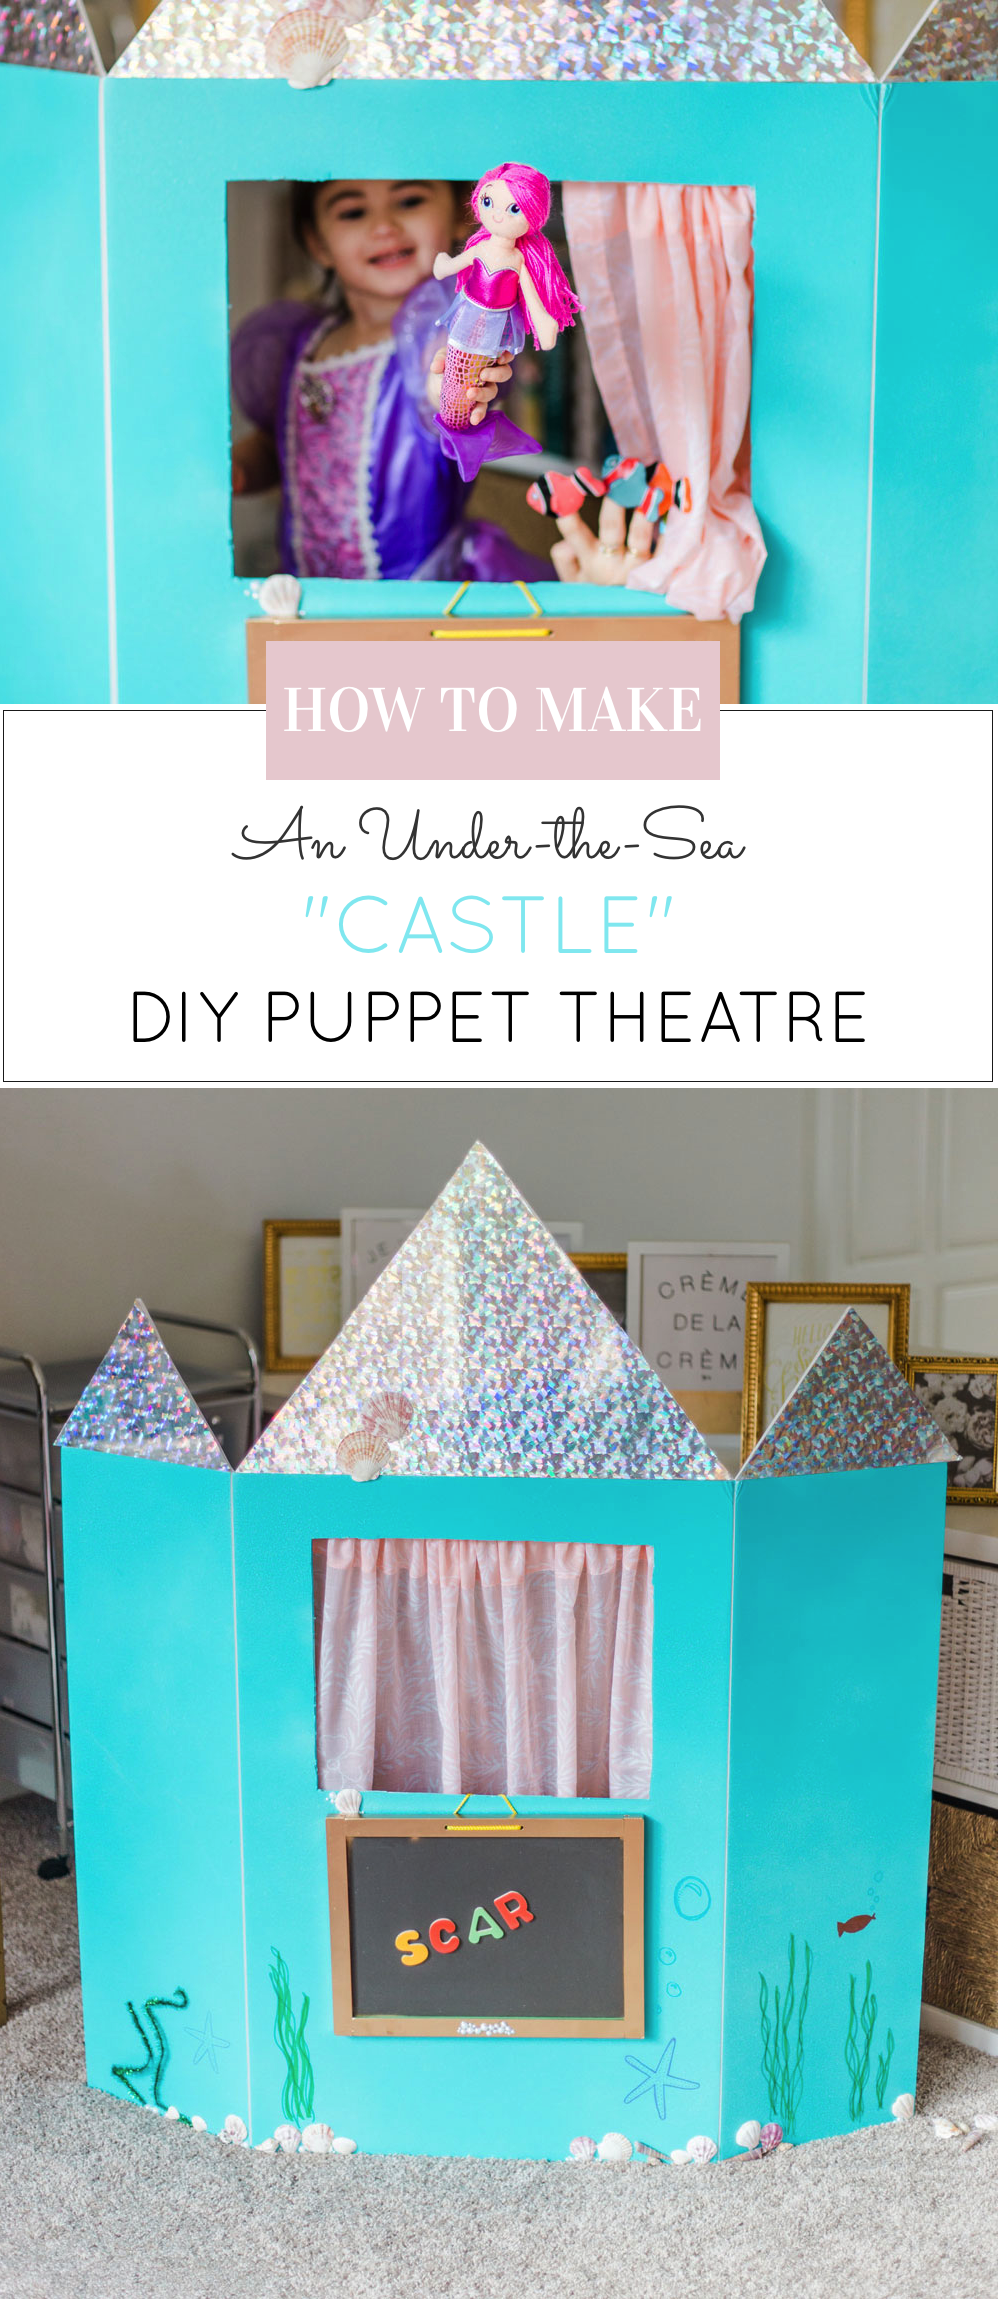 How to make a DIY Puppet Theatre with a trifold foam poster board. (Learning Colors, Numbers, and Letters too ... in an under-the-sea CASTLE!) | glitterinc.com | @glitterinc